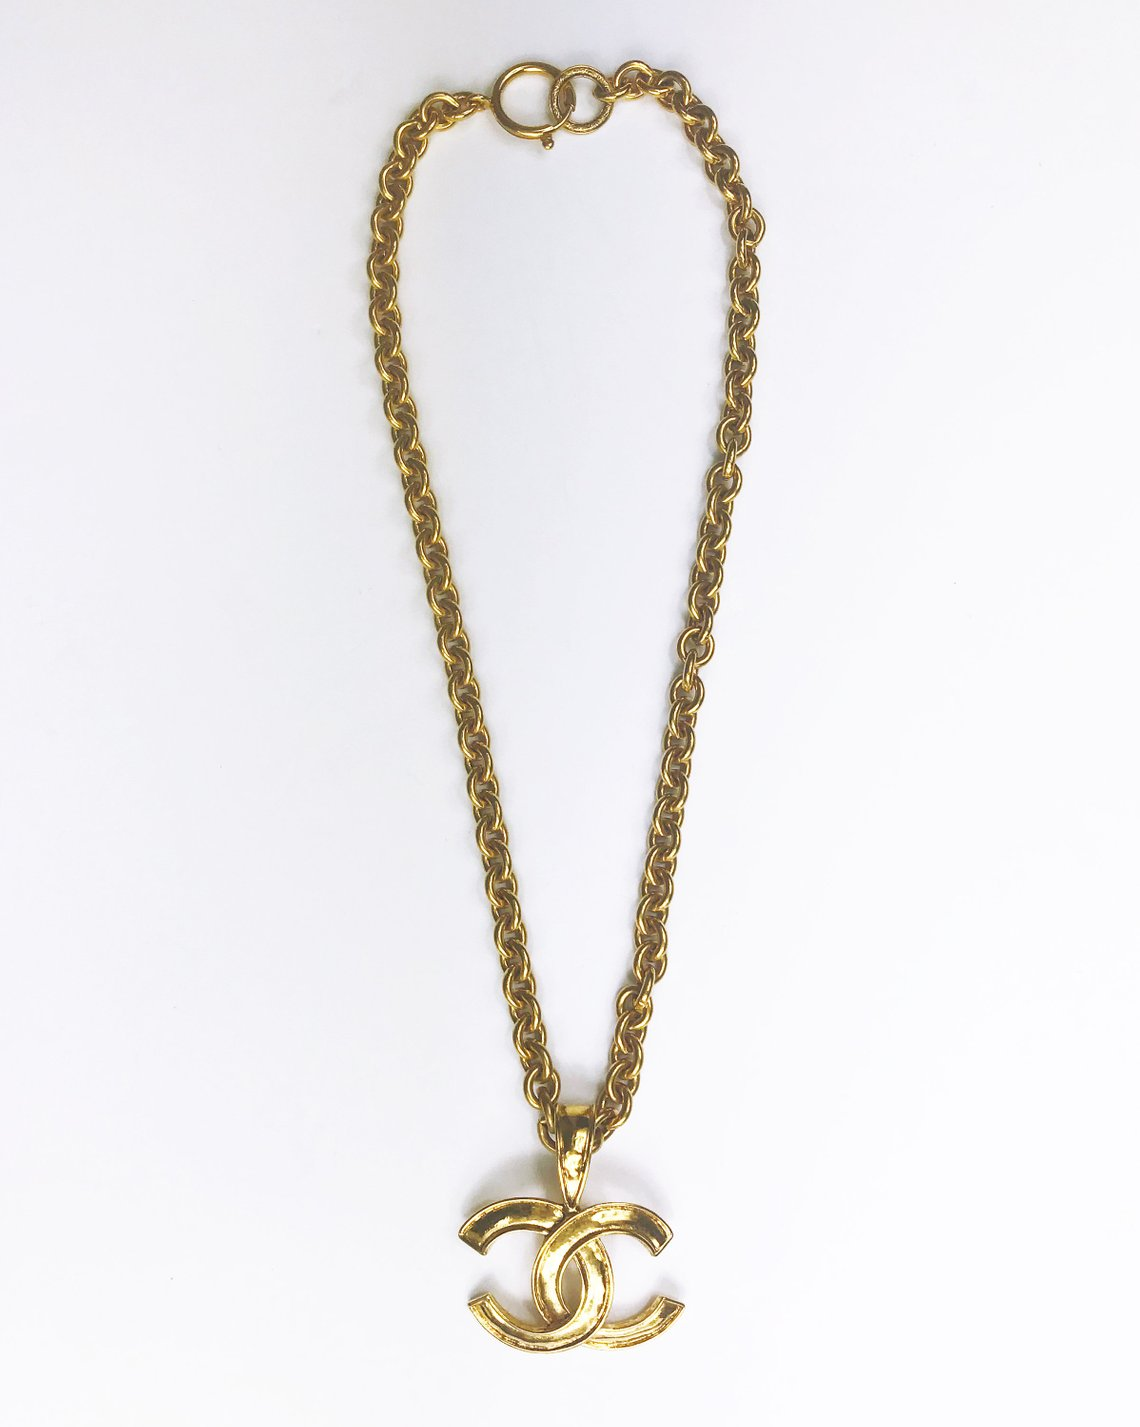 aac96682241 Fruit Vintage Chanel logo pendant necklace dating to 1994. Features a thick  gold chain and